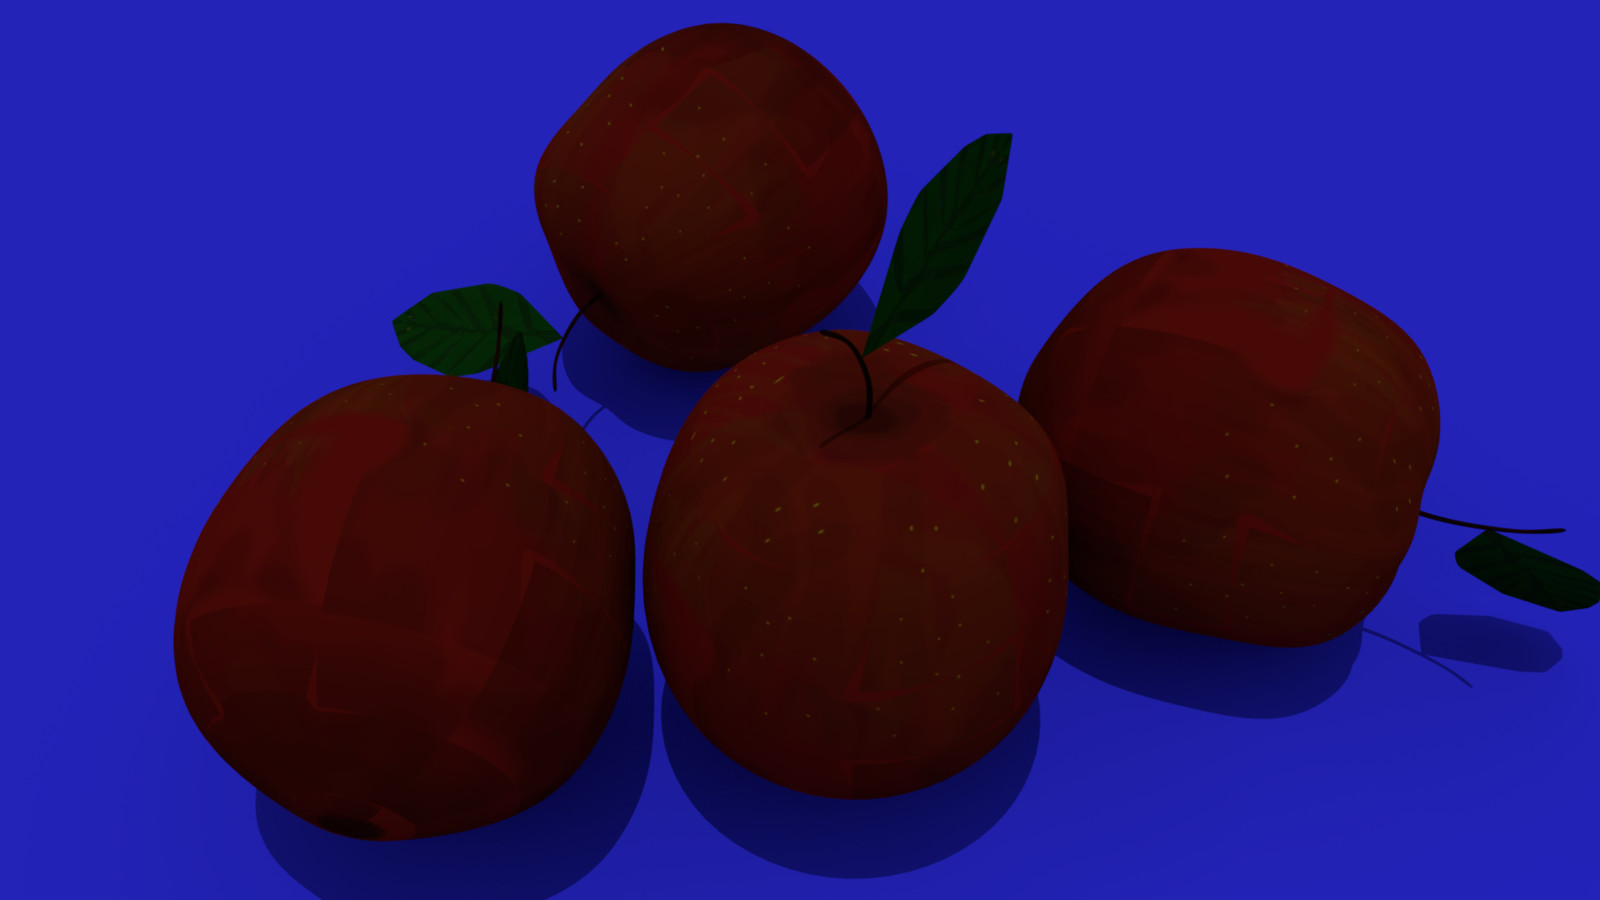 3d Hand Painted Apples